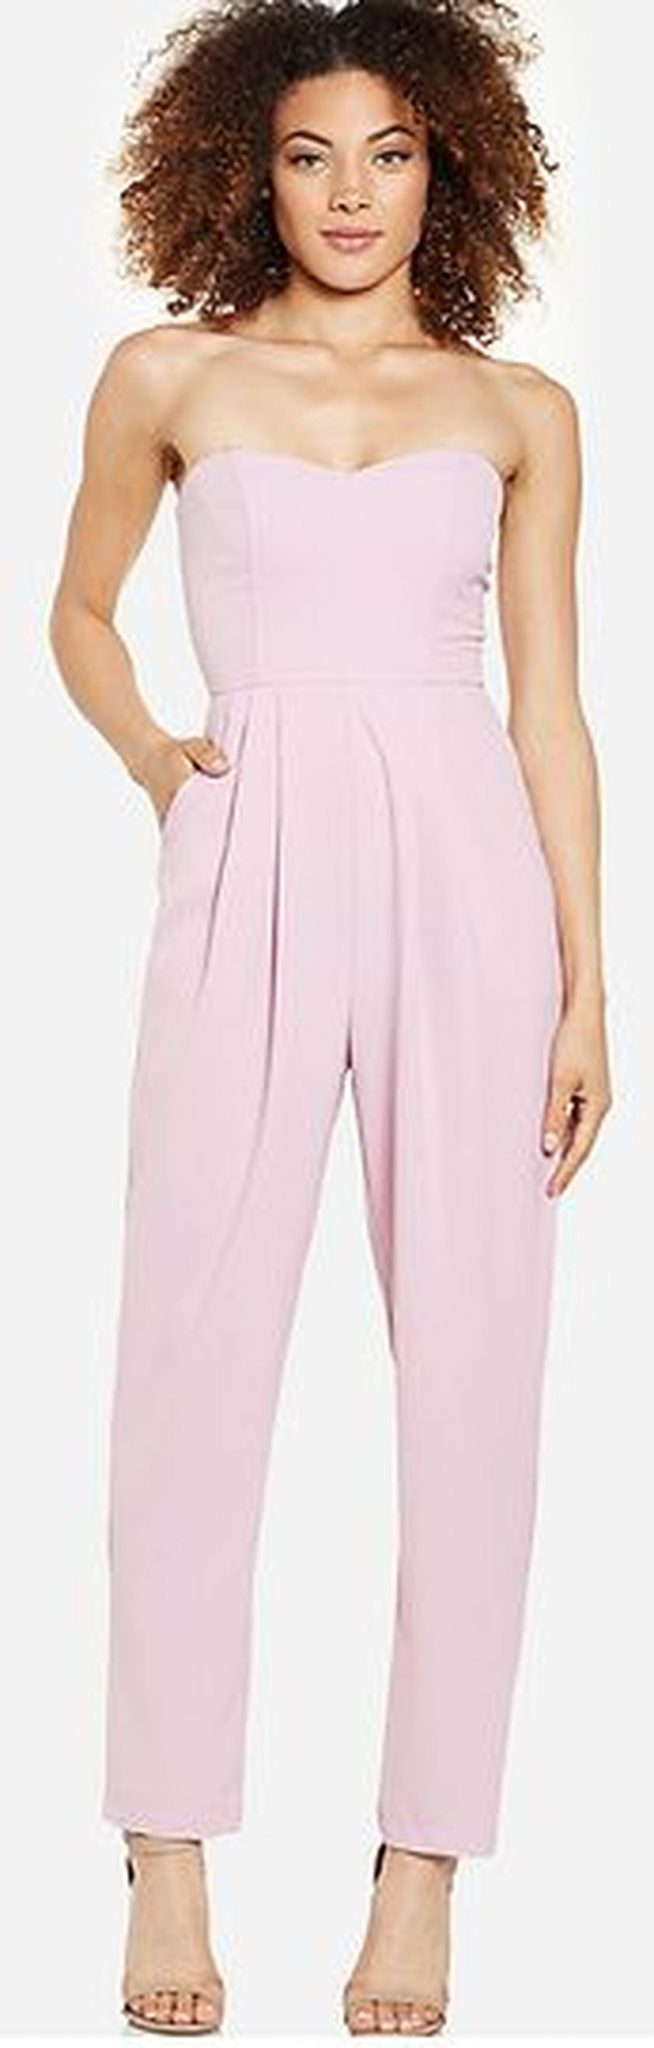 Jumpsuits strapless outfit 12